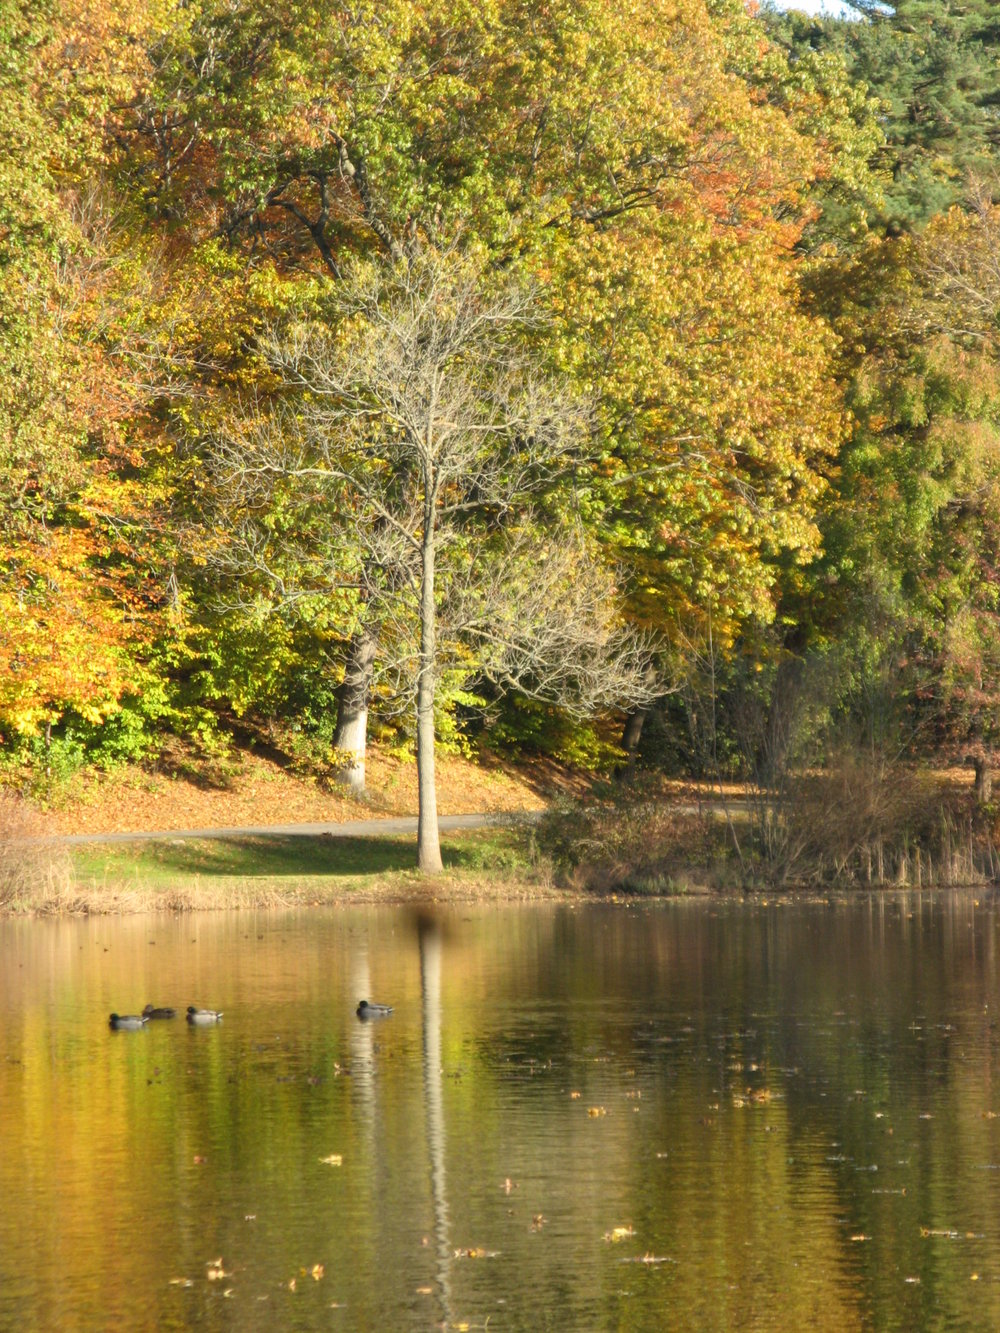 There are many parks sprinkled around New Haven that are beautiful in any season. Our favorite is Edgewood Park where you walk around the large pond and feed the ducks